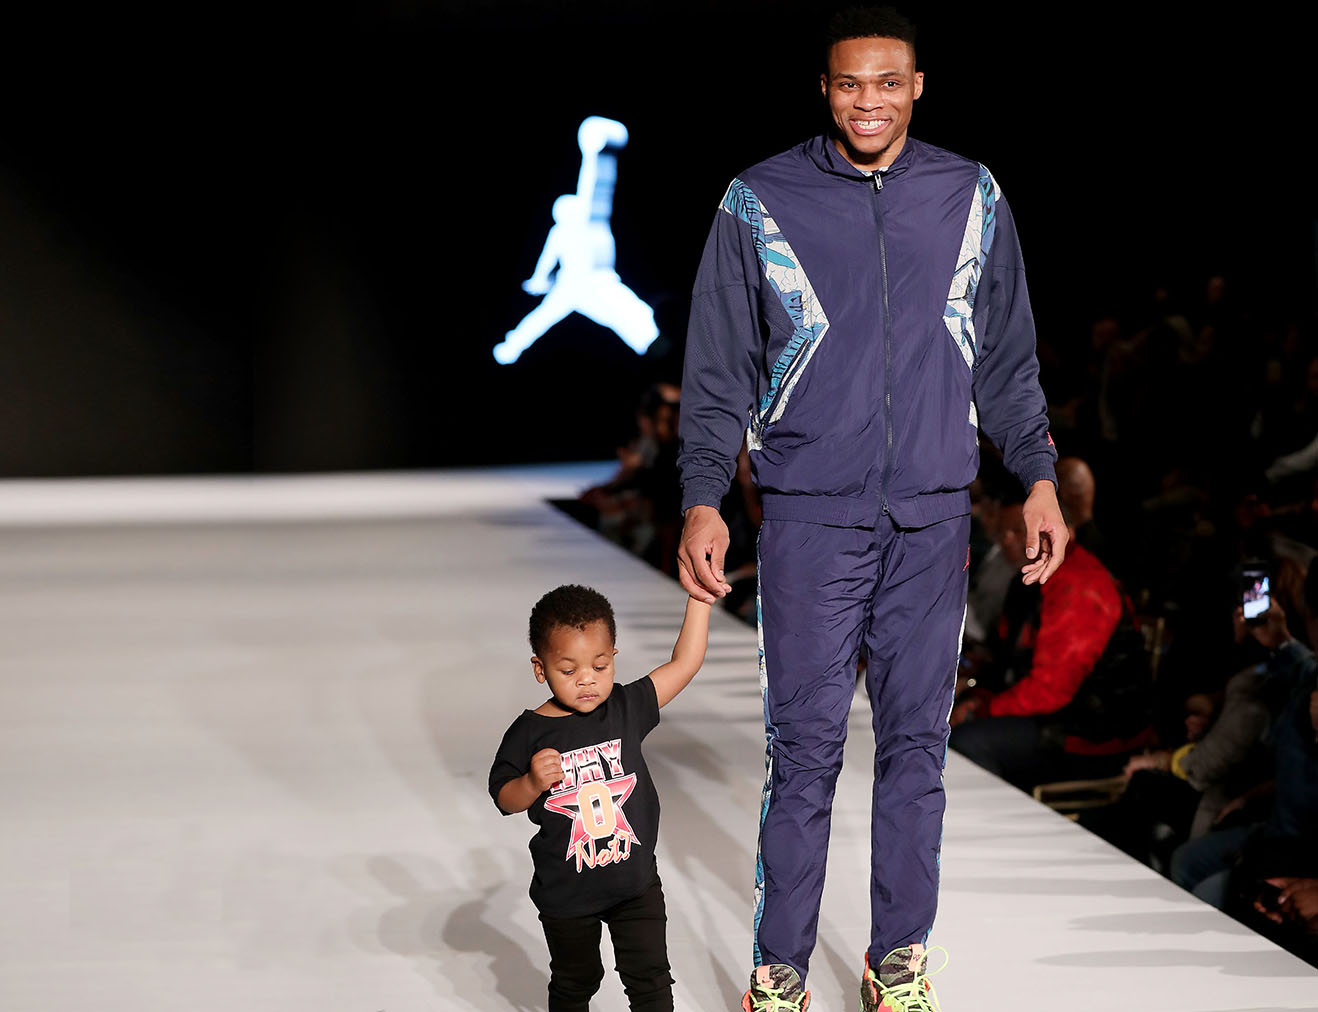 LITTLE STARS LEAVE BIG IMPRESSION ON NBA ALL-STAR WEEKEND